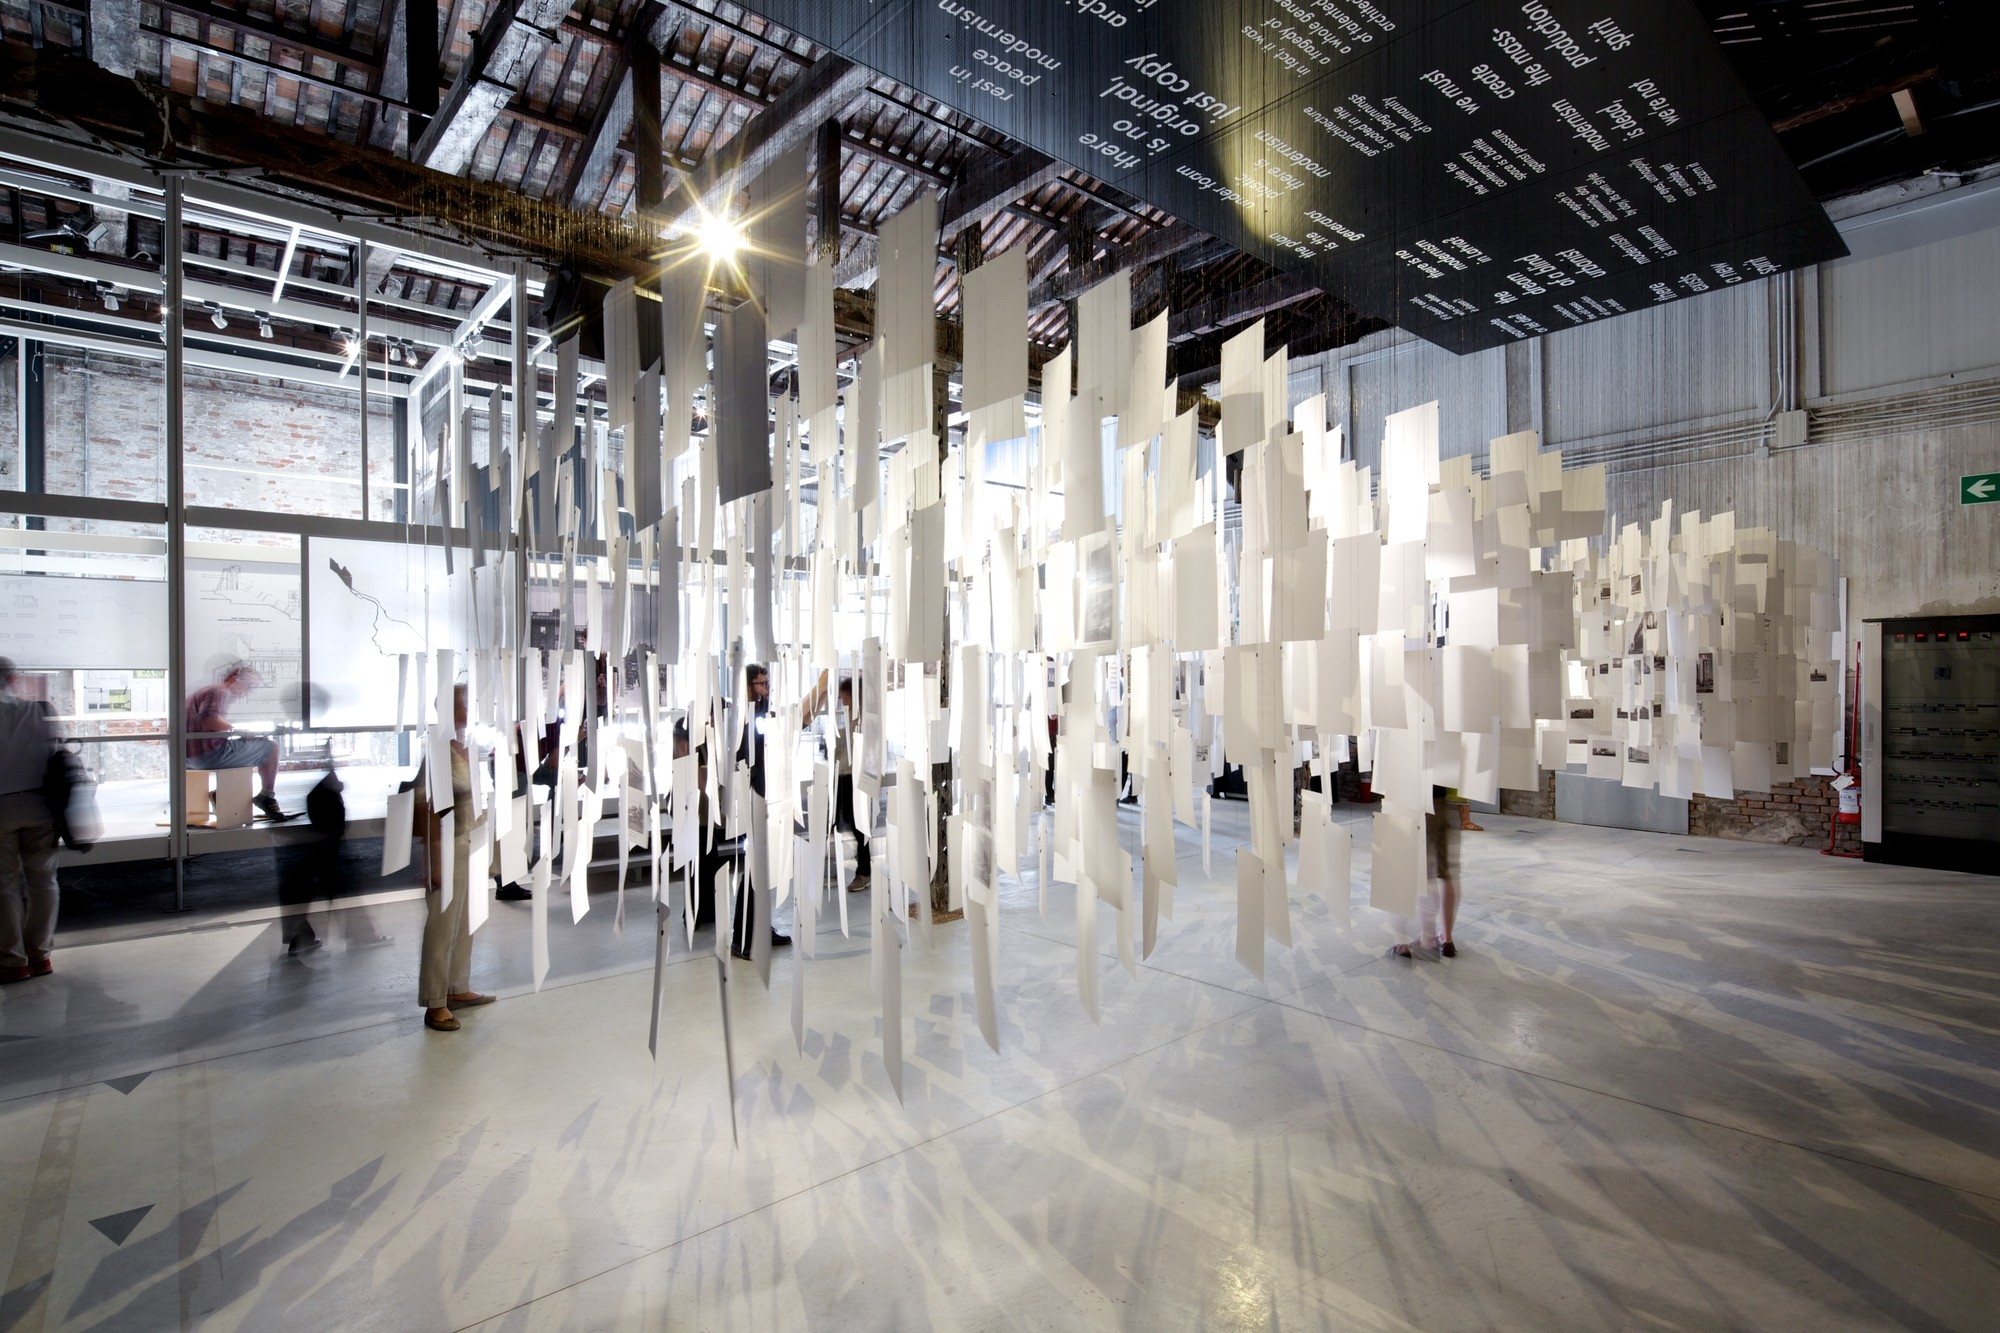 """Unwritten"" - Latvia's Pavilion at the Venice Biennale 2014, © Nico Saieh"